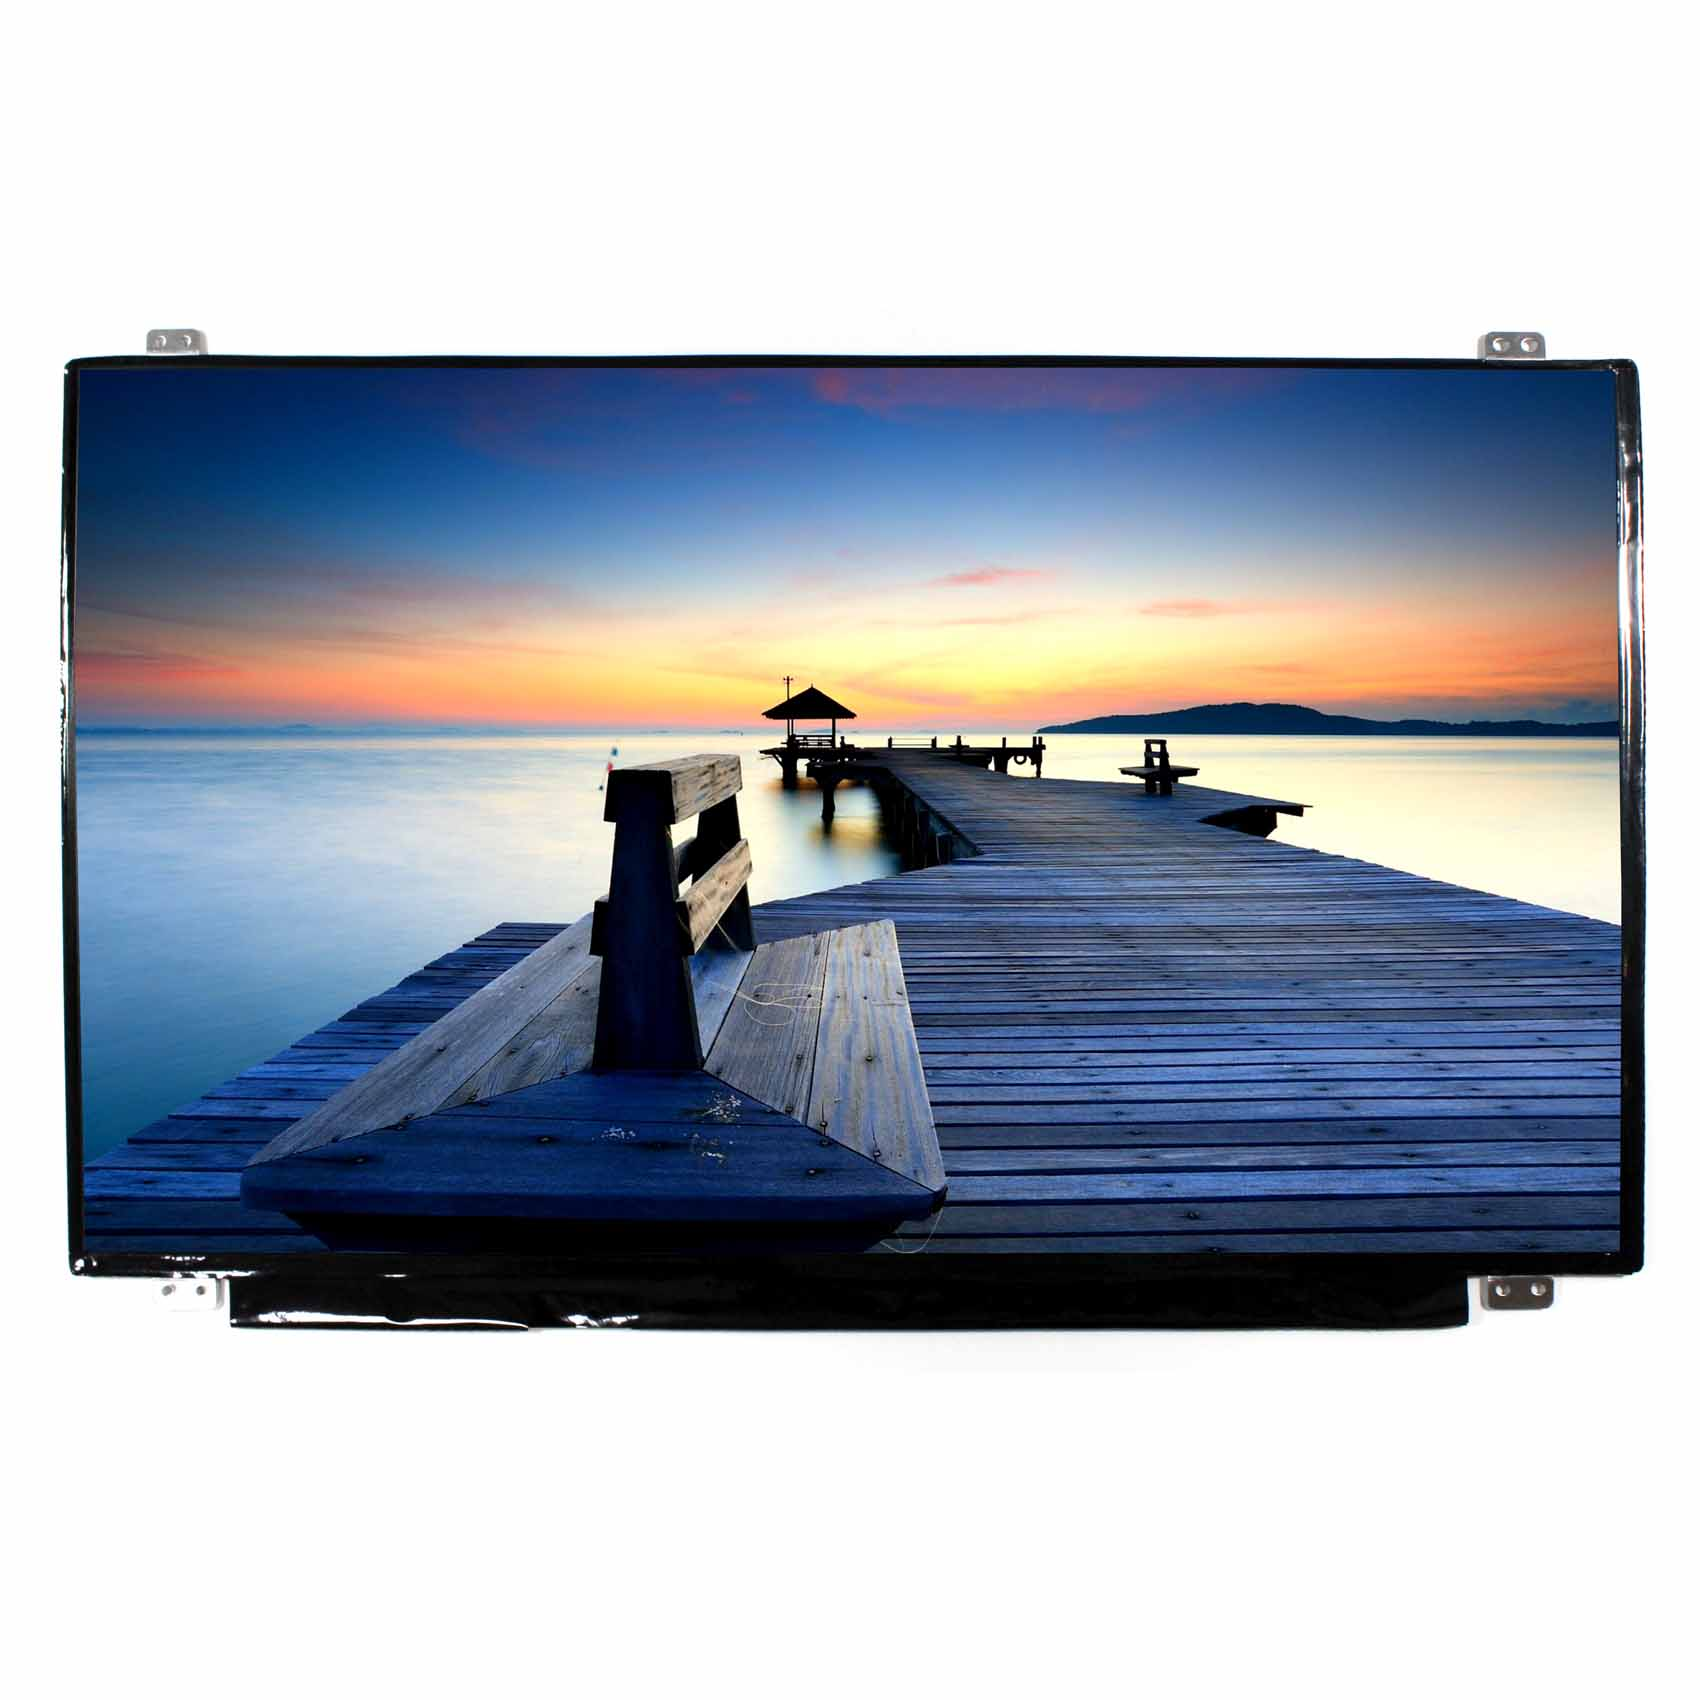 15.6 LCD Screen B156HAN01.2 1920X1080 FHD Display 30Pin eDP LCD Panel grassroot 15 6 inch b156htn05 1 led lcd screen for alienware 15 r3 1920x1080 fhd 120hz display 3d edp 30pin replacement screen